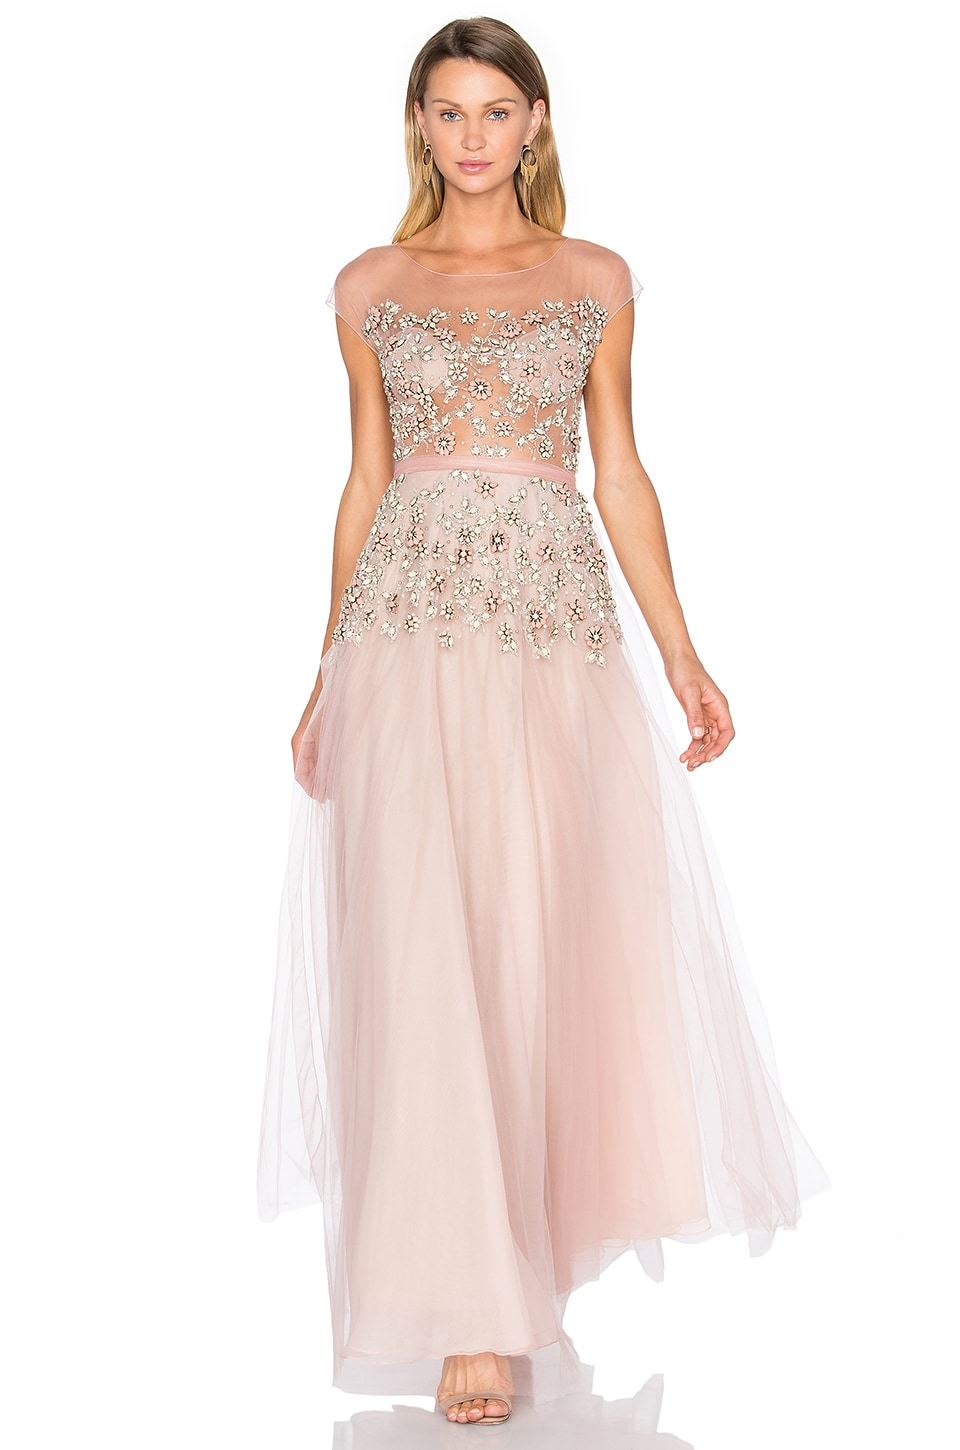 Patricia Bonaldi Floral Embellished Gown in Nude